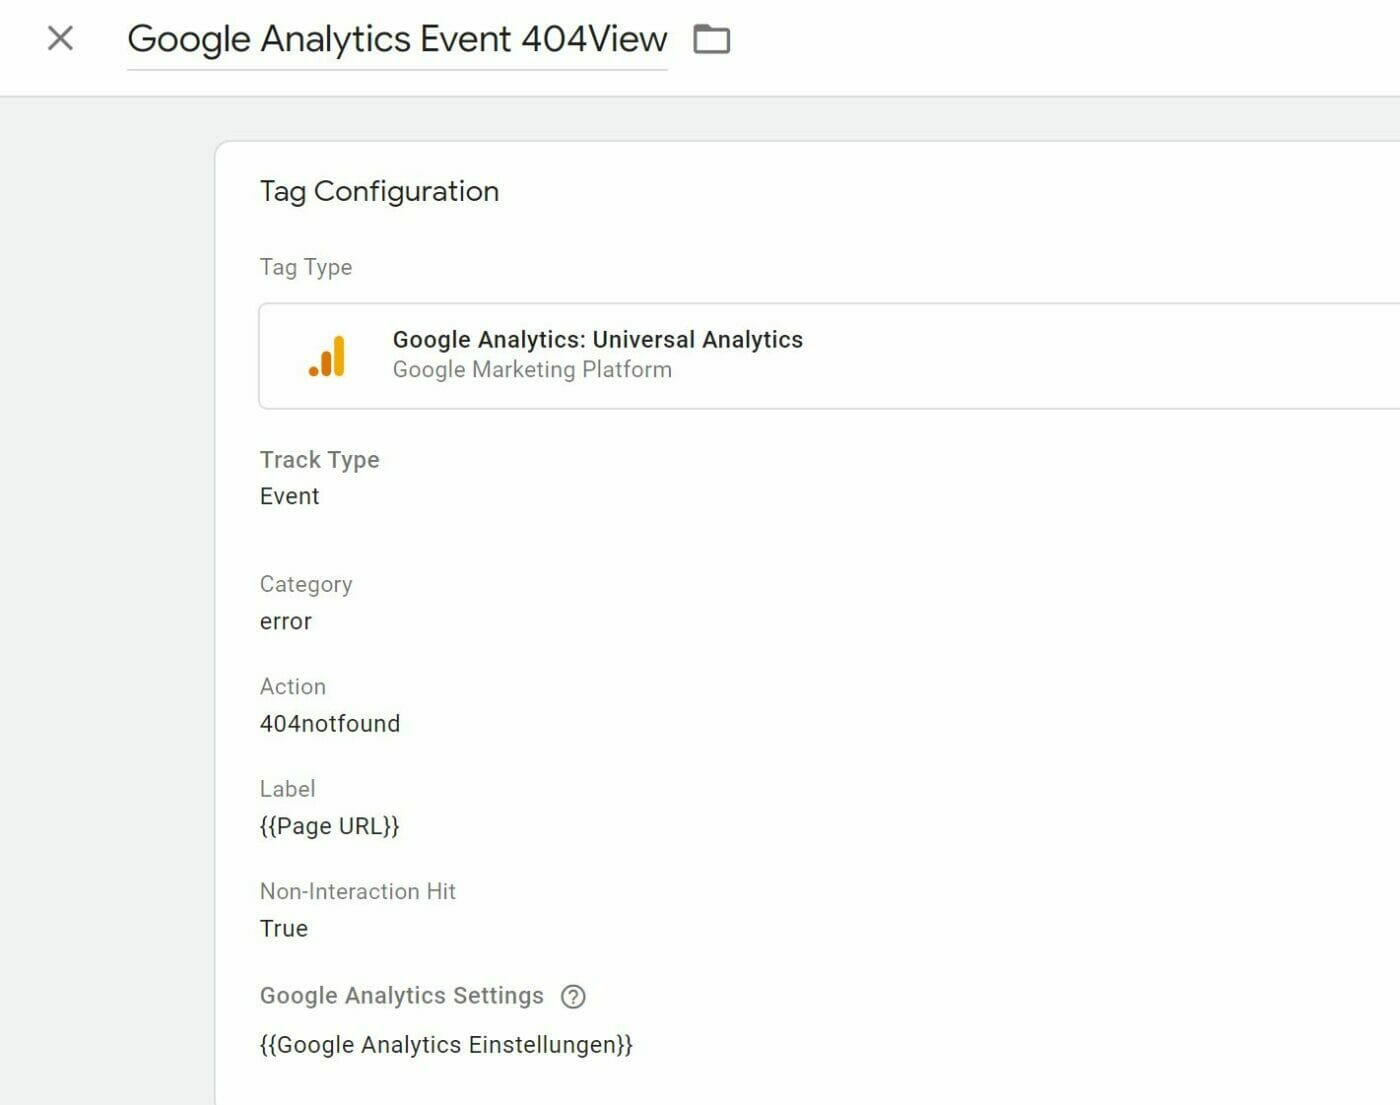 Google Analytics 404 Event